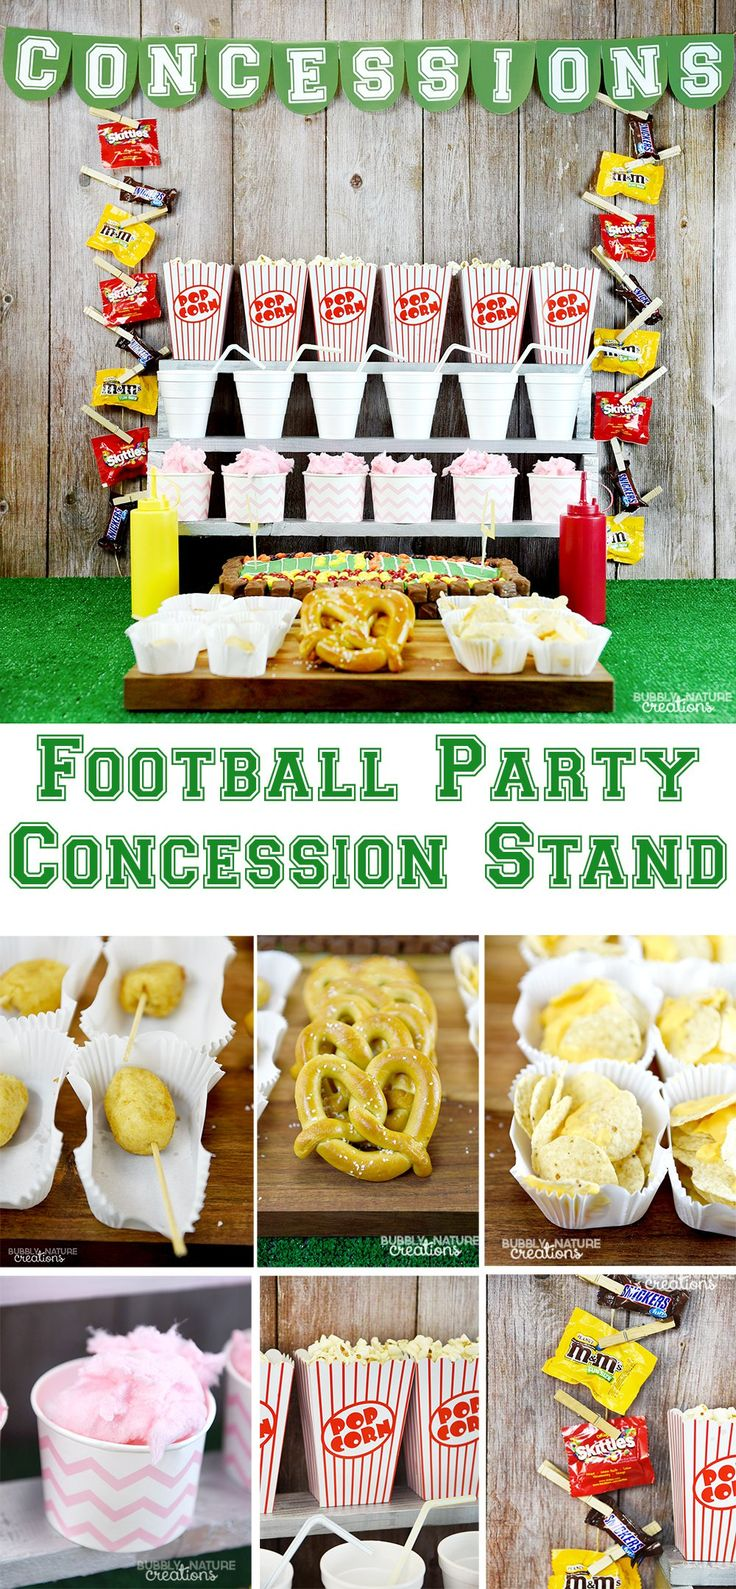 Football Party Concession Stand! Such a fun idea for a super bowl party with…